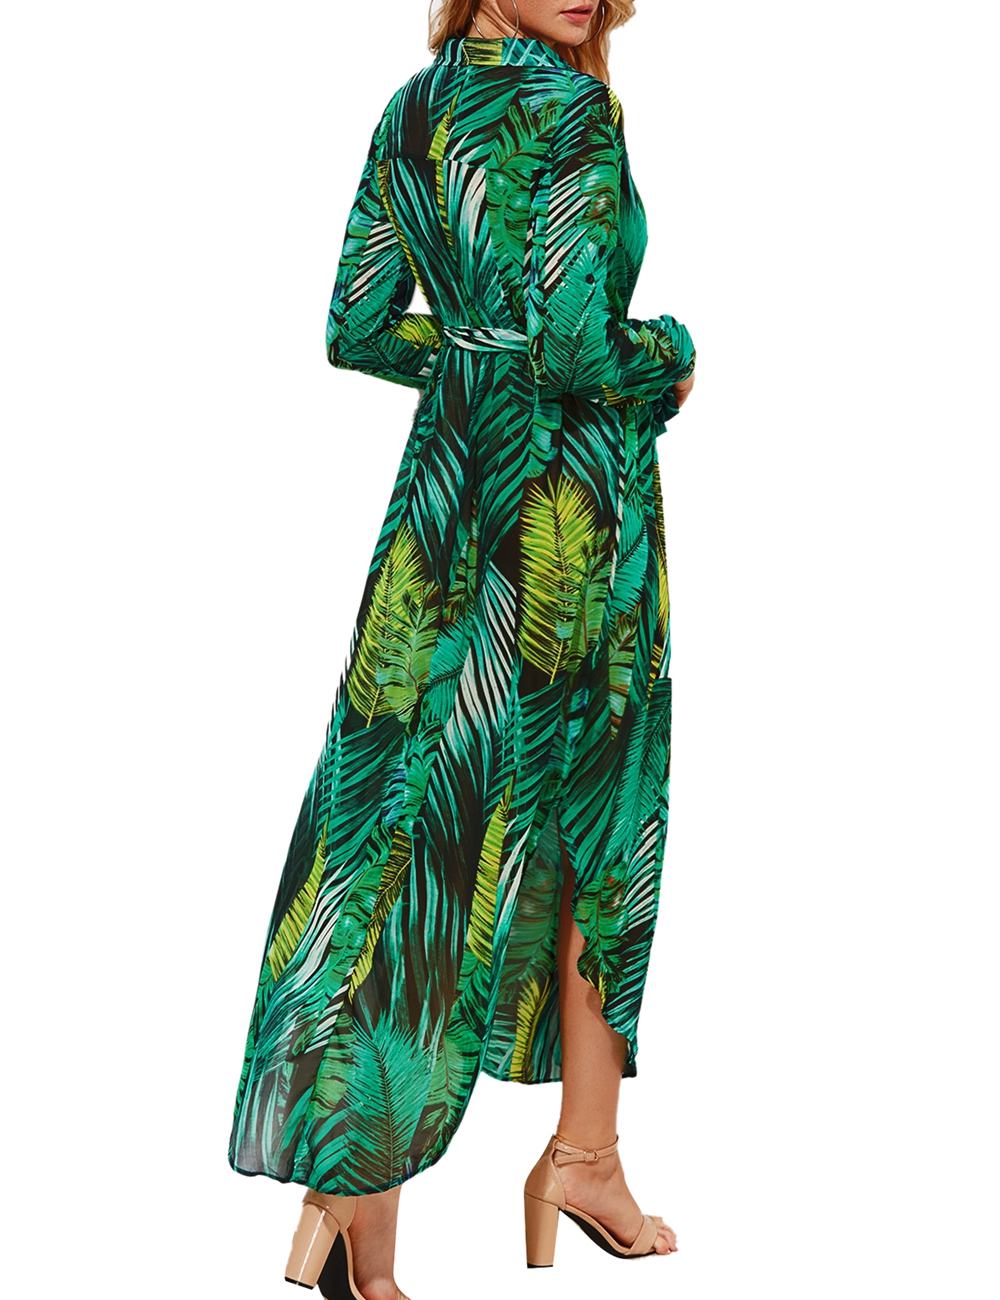 iShine autumn palm leaf printed long sleeve v neck beach maxi chiffon long dress casual split elegant women boho dress vestidos 5